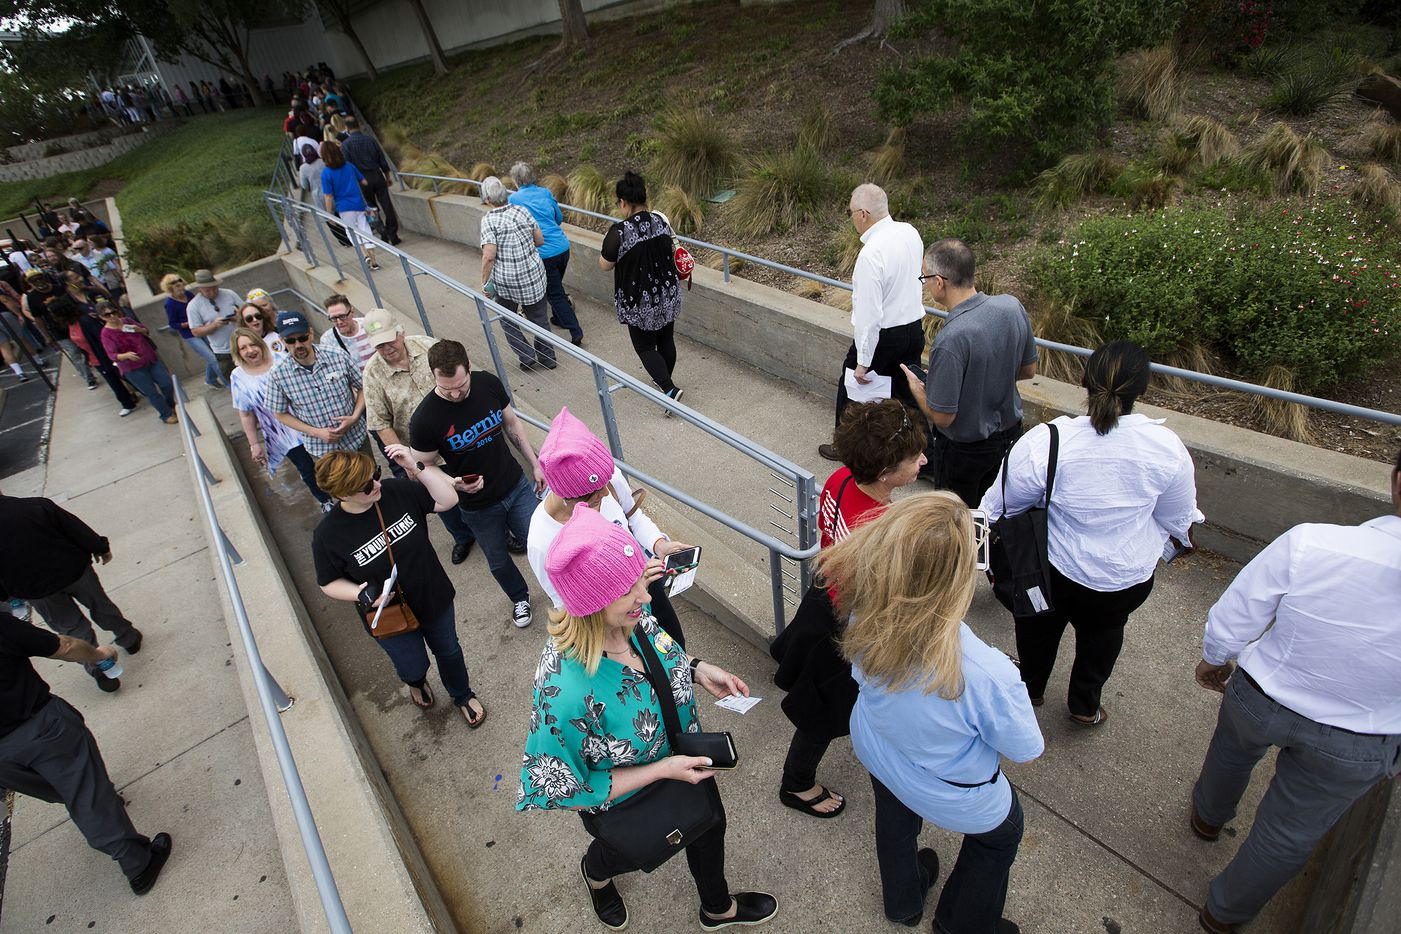 Supporters wait in line for the doors to open for a rally by Vermont senator Bernie Sanders rally at the Verizon Theater on Thursday, April 20, 2017, in Grand Prairie, Texas. Sanders, the runner-up in the 2016 Democratic contest for president, appeared in North Texas to rally residents against President Donald Trump's agenda.